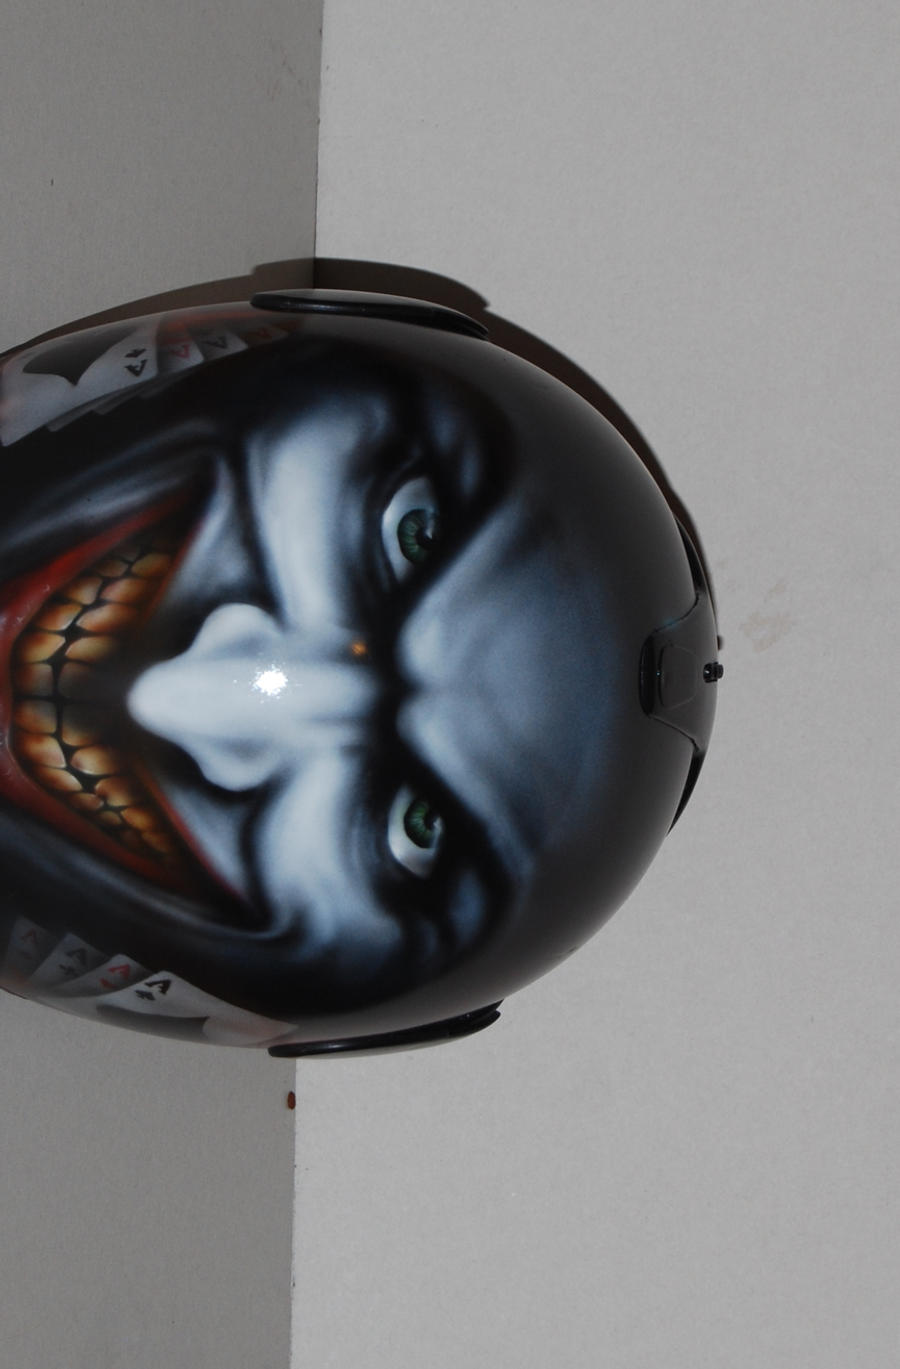 Airbrush Joker Wallpaper: JOKER HELM AIRBRUSH By Agi2x On DeviantArt